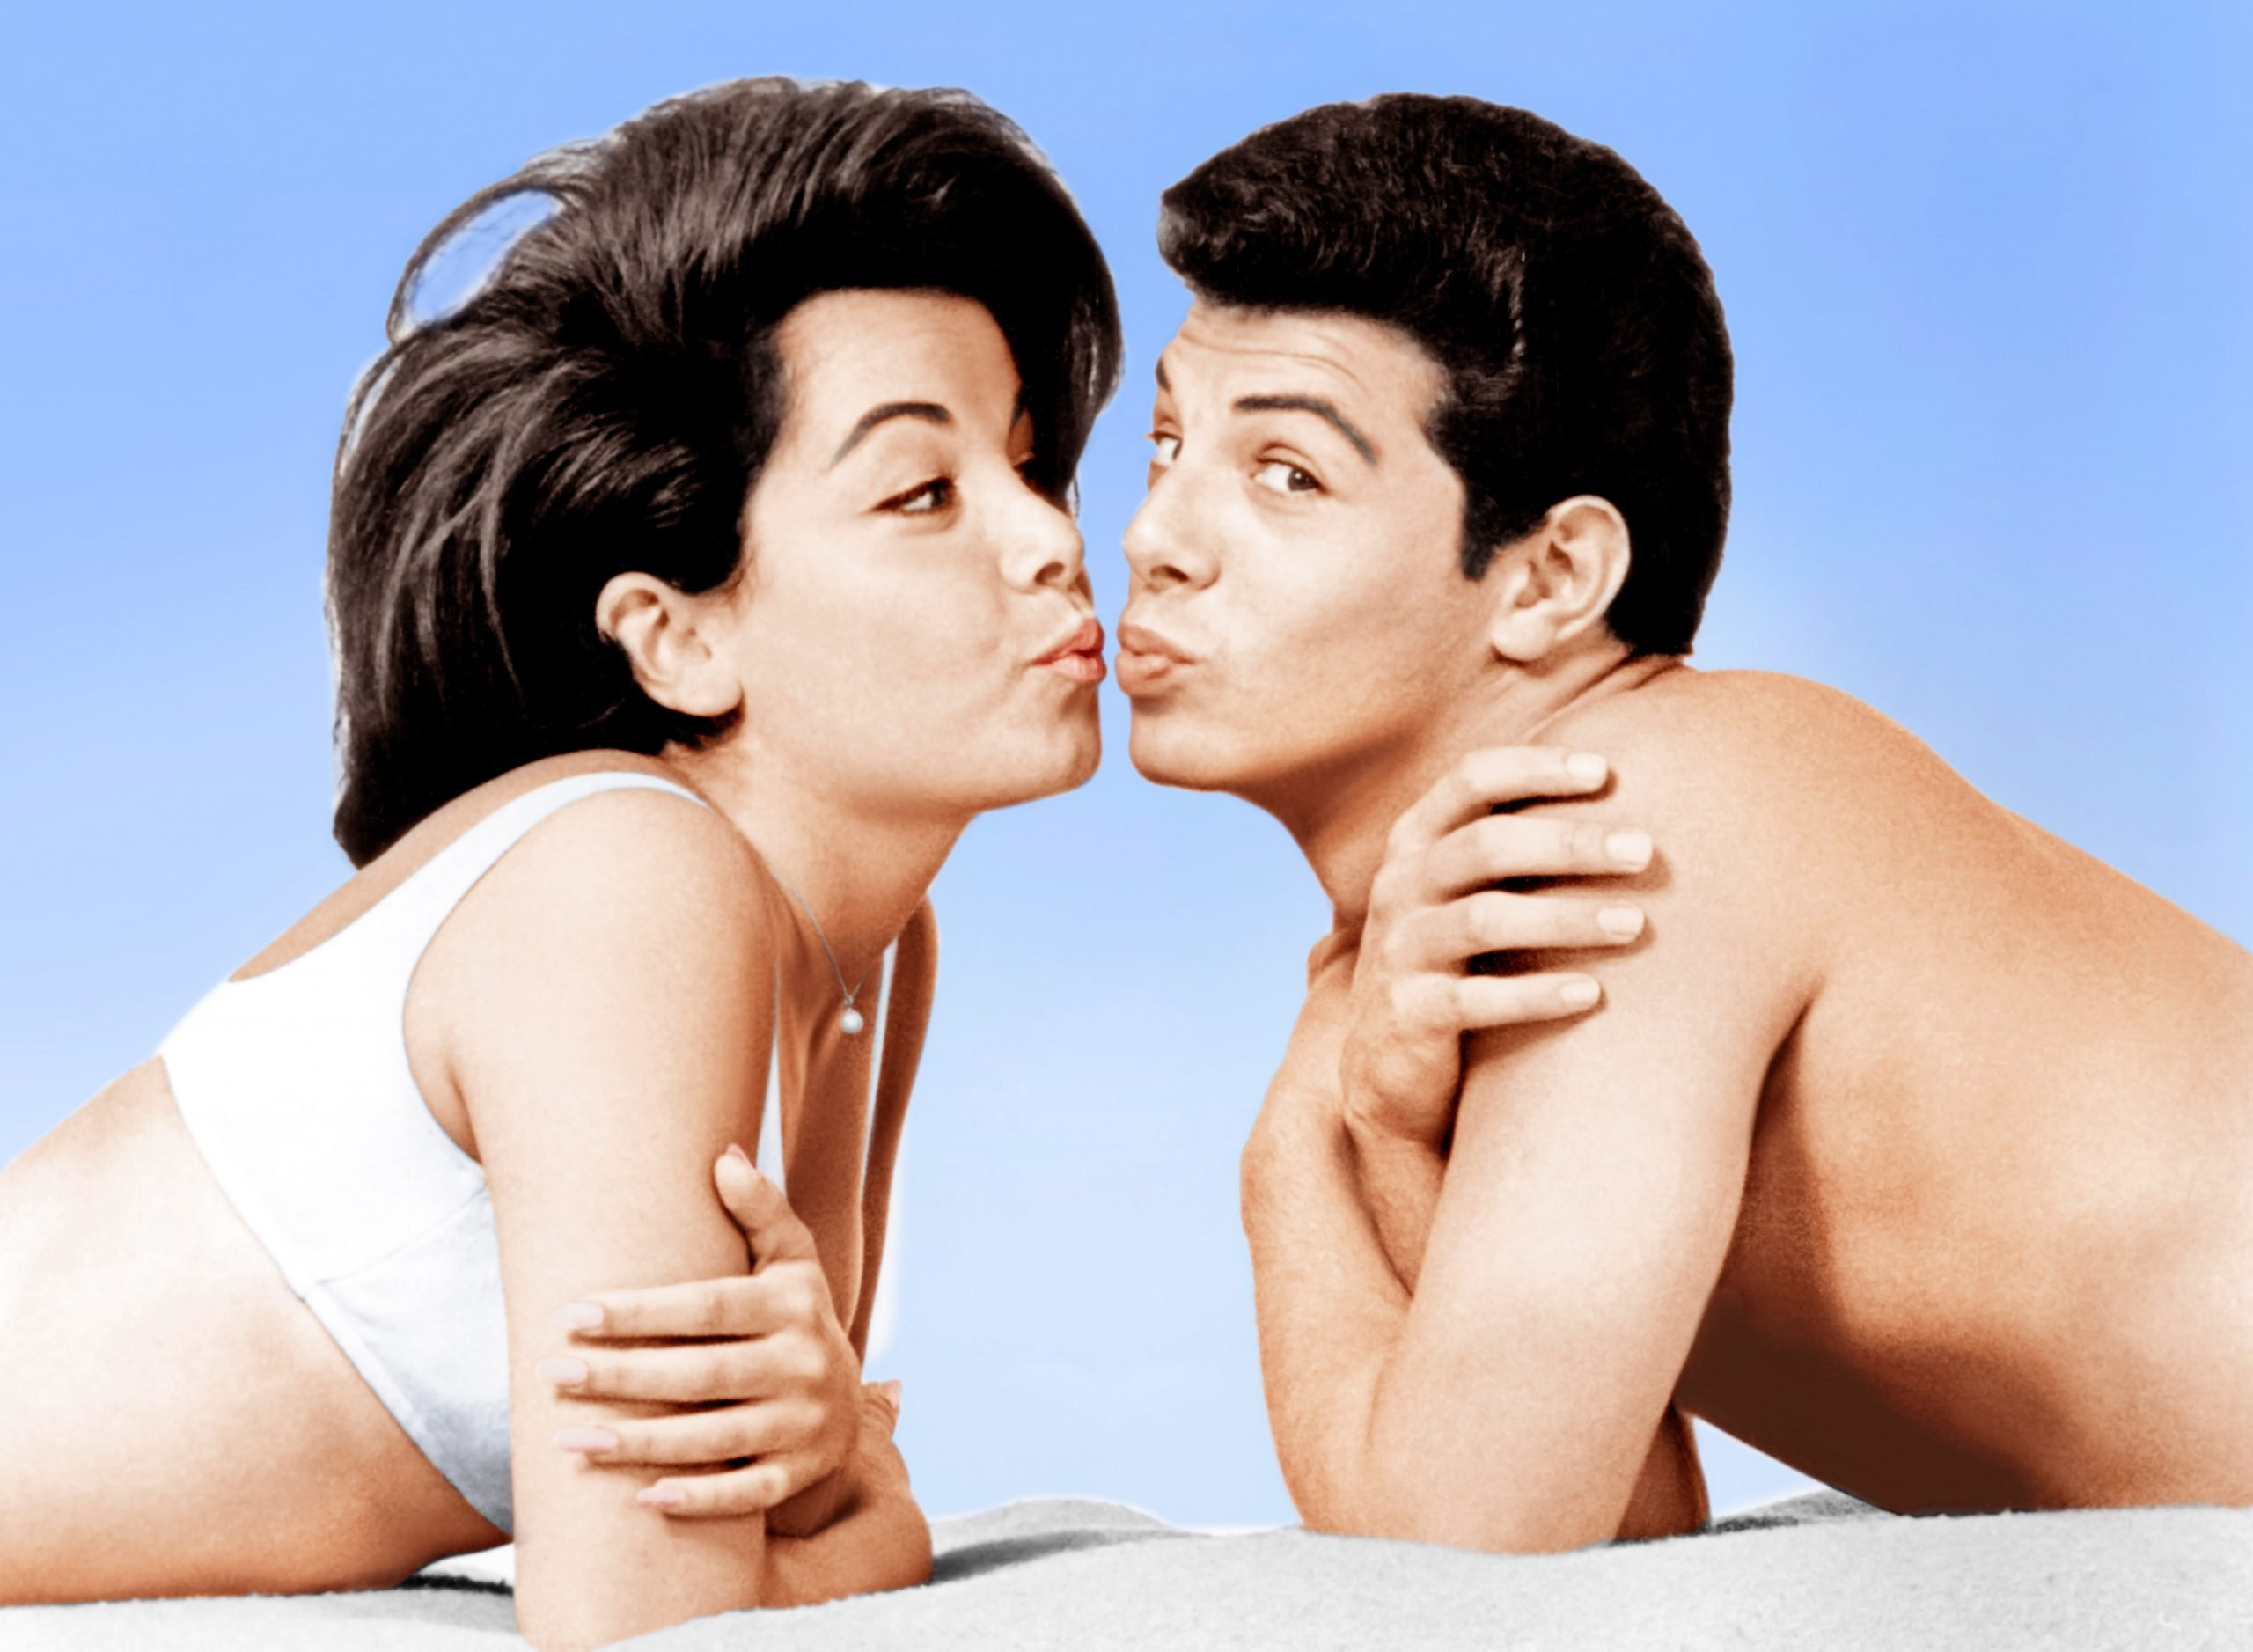 annette-funicello-frankie-avalon-beach-party